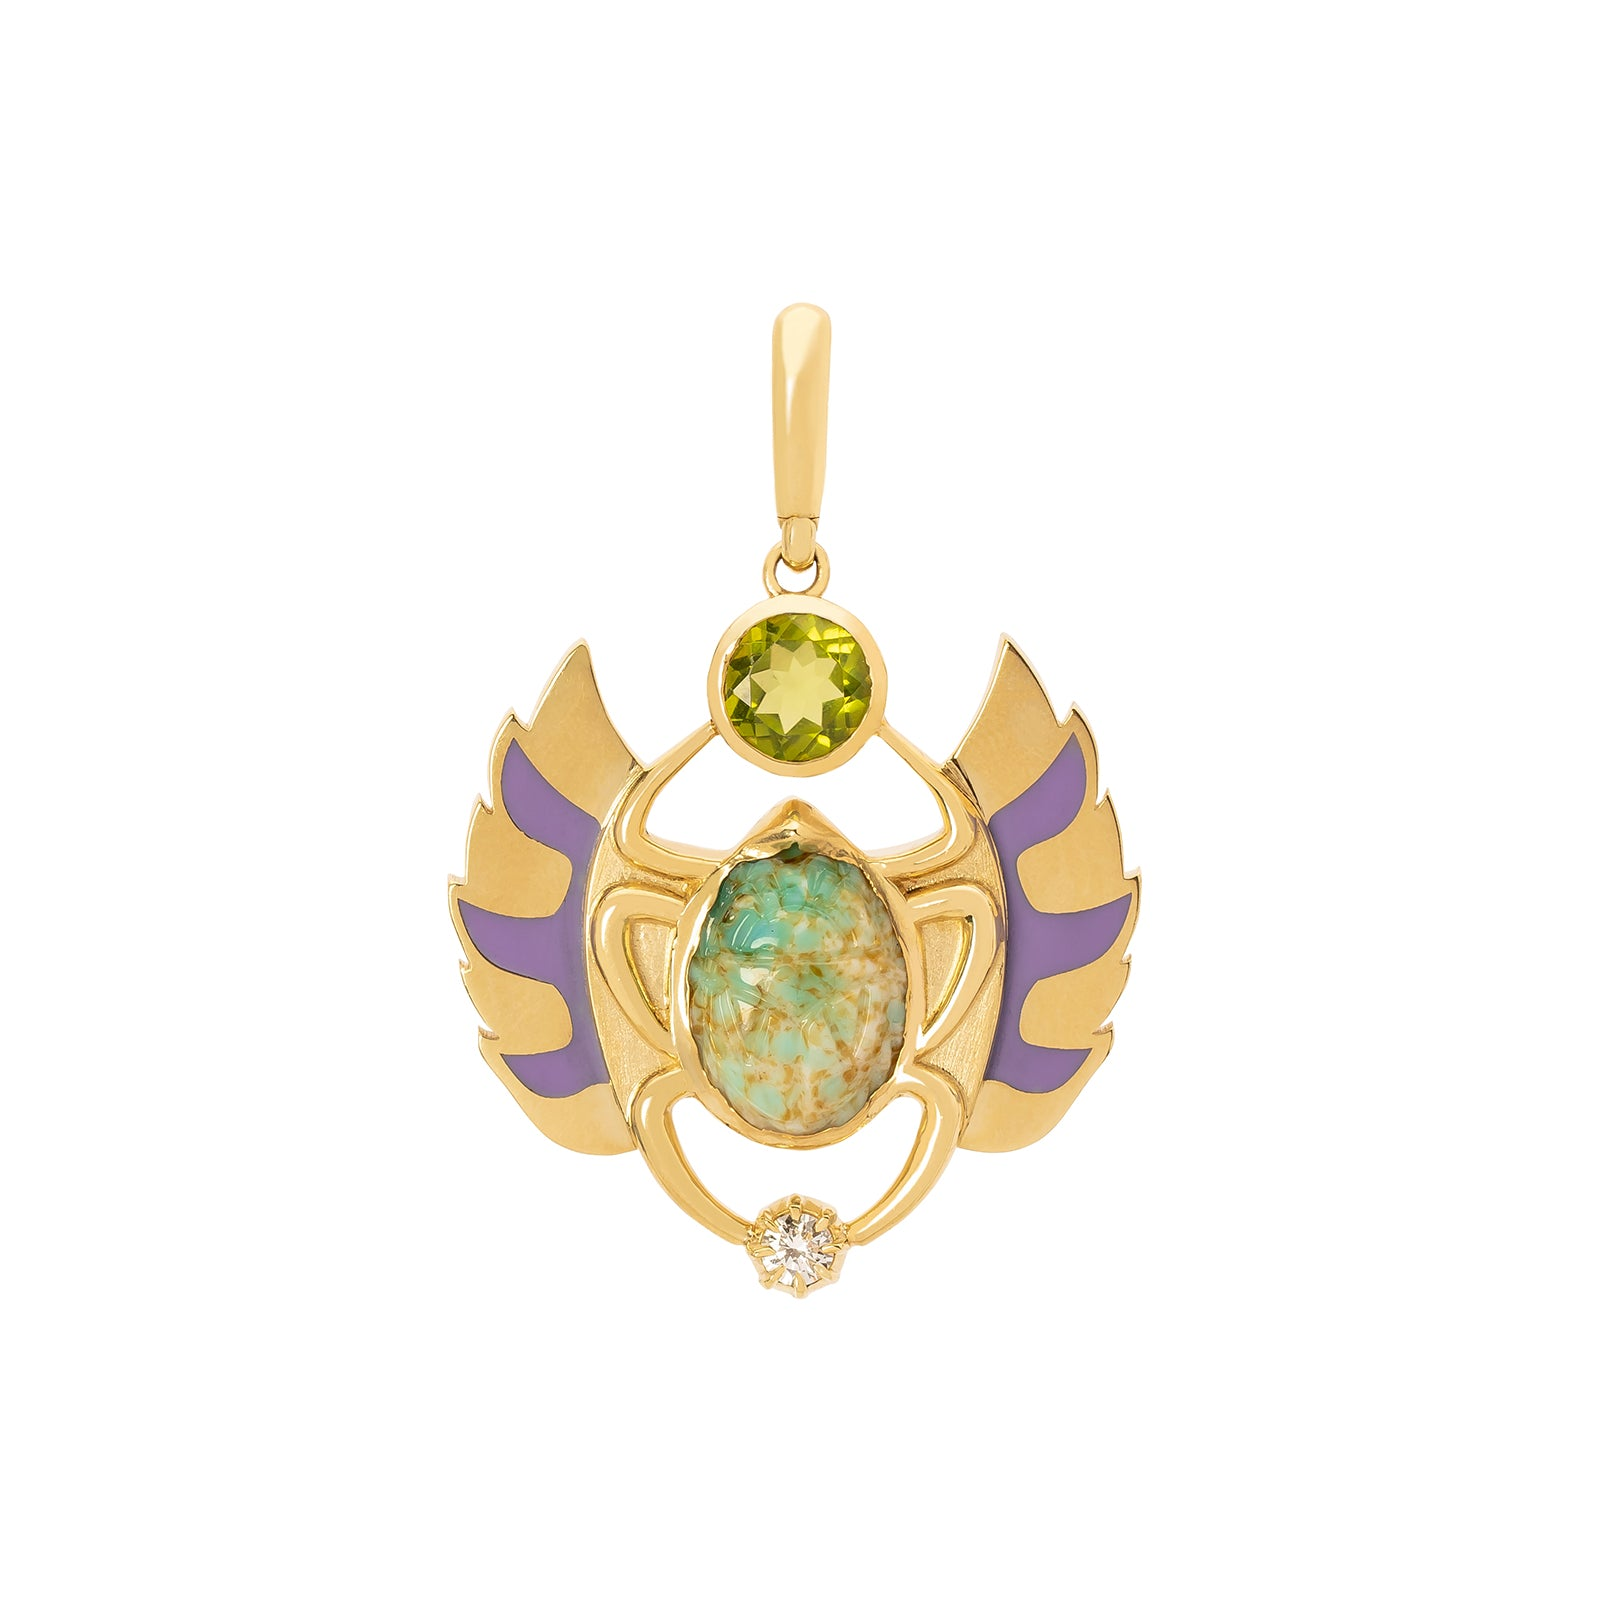 Jenna Blake Flying Peridot Scarab Pendant - Charms & Pendants - Broken English Jewelry